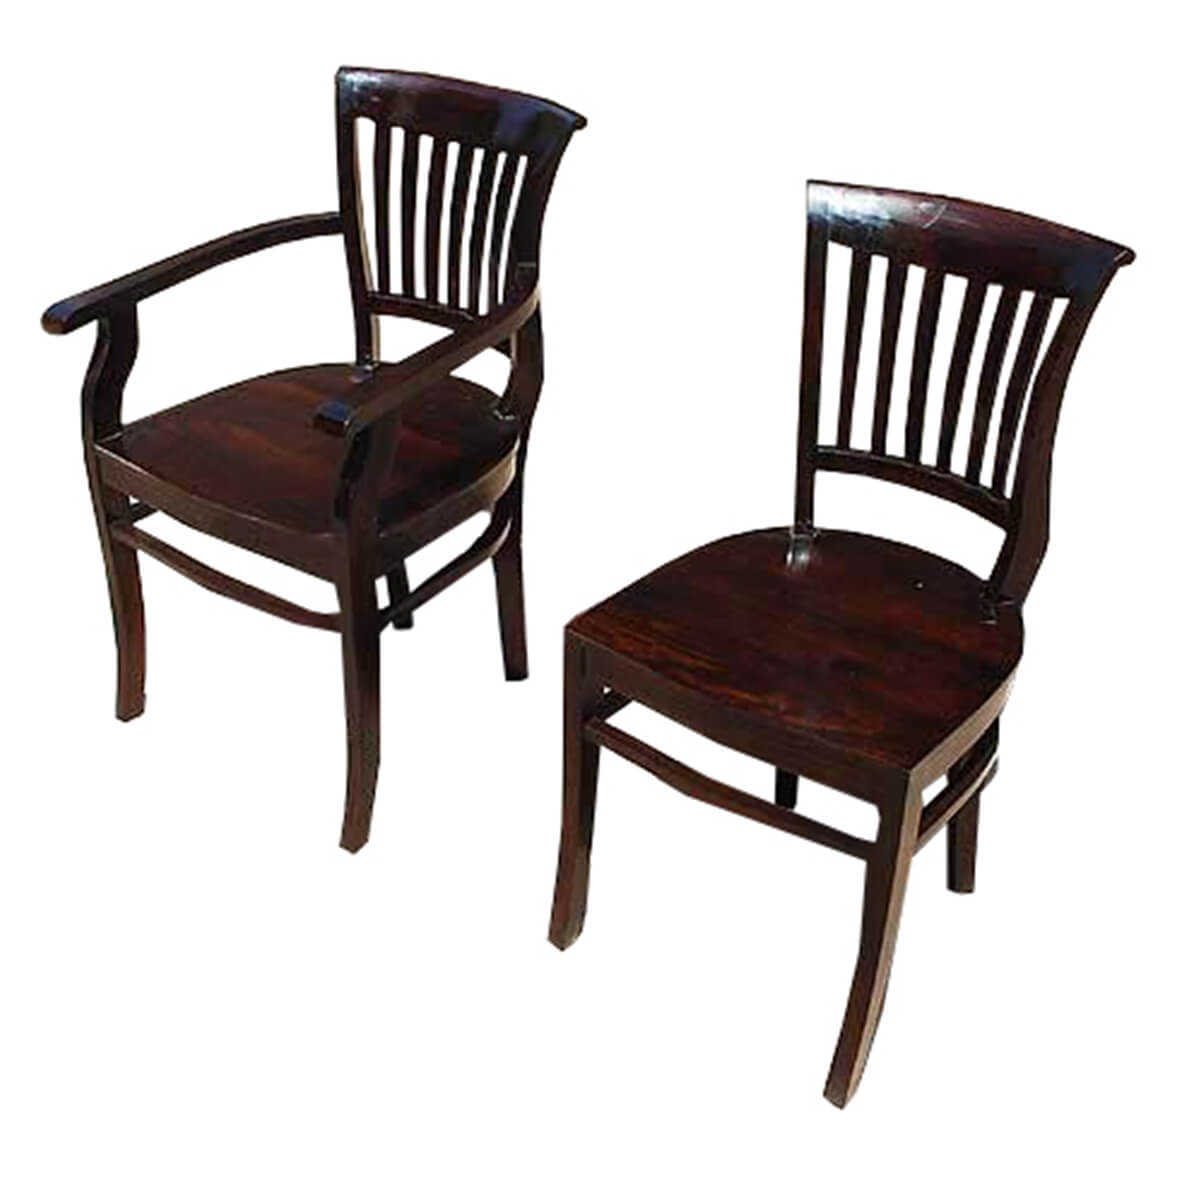 Rustic Wood Chairs Nottingham Rustic Furniture Wood Dining Table And Chair Set